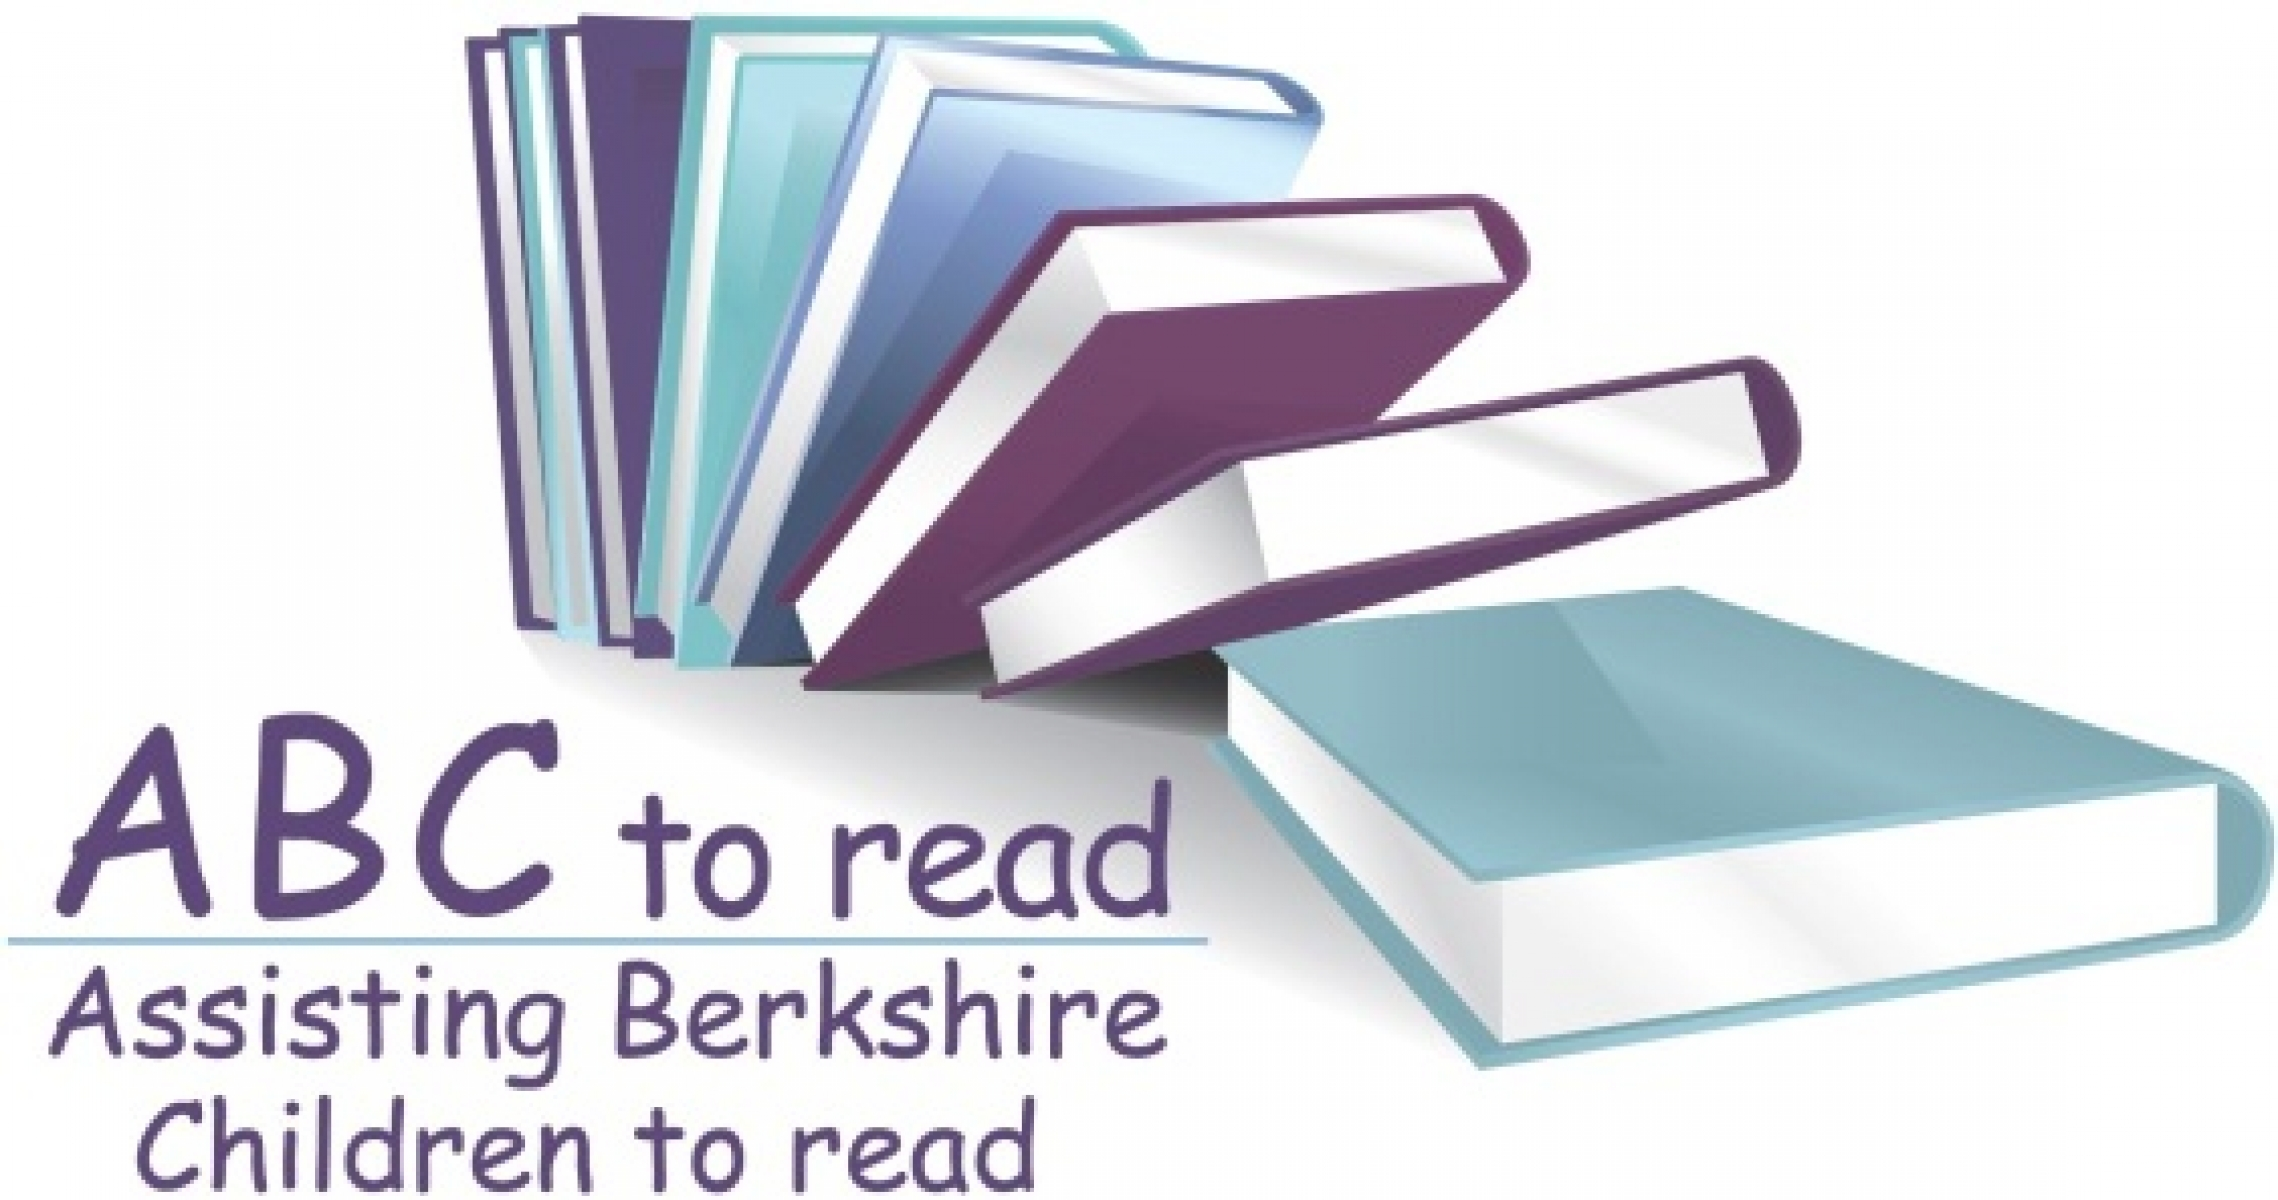 ABC to read (Assisting Berkshire Children) eCards